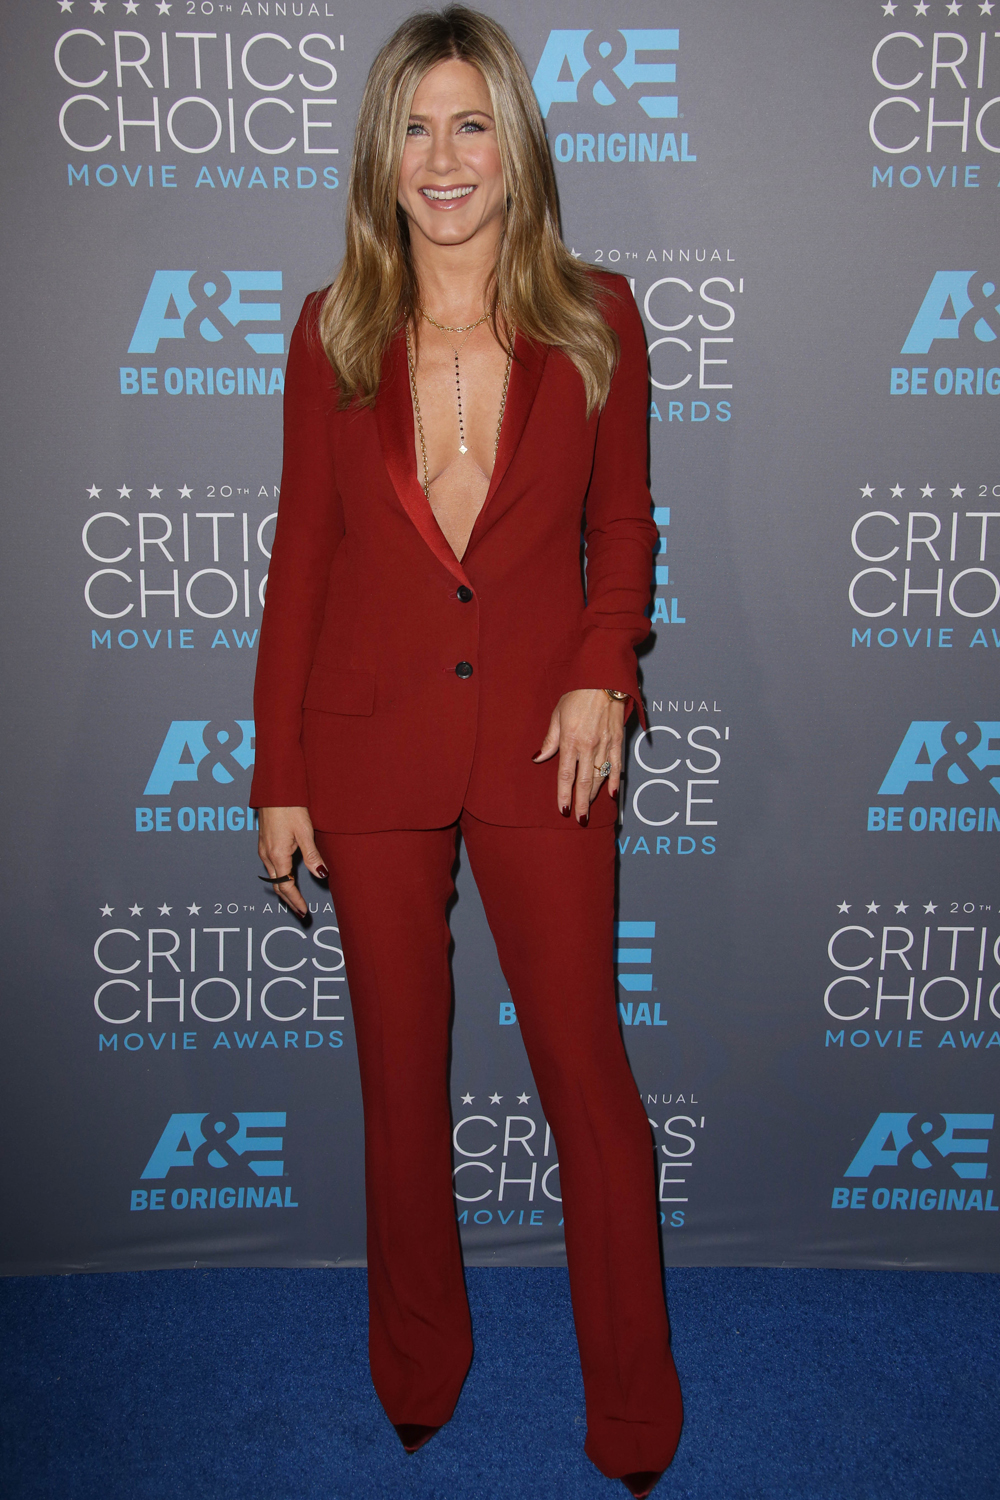 From Jennifer Aniston To Angelina Jolie: 8 Looks You Need To See From The Critics' Choice Awards 2015